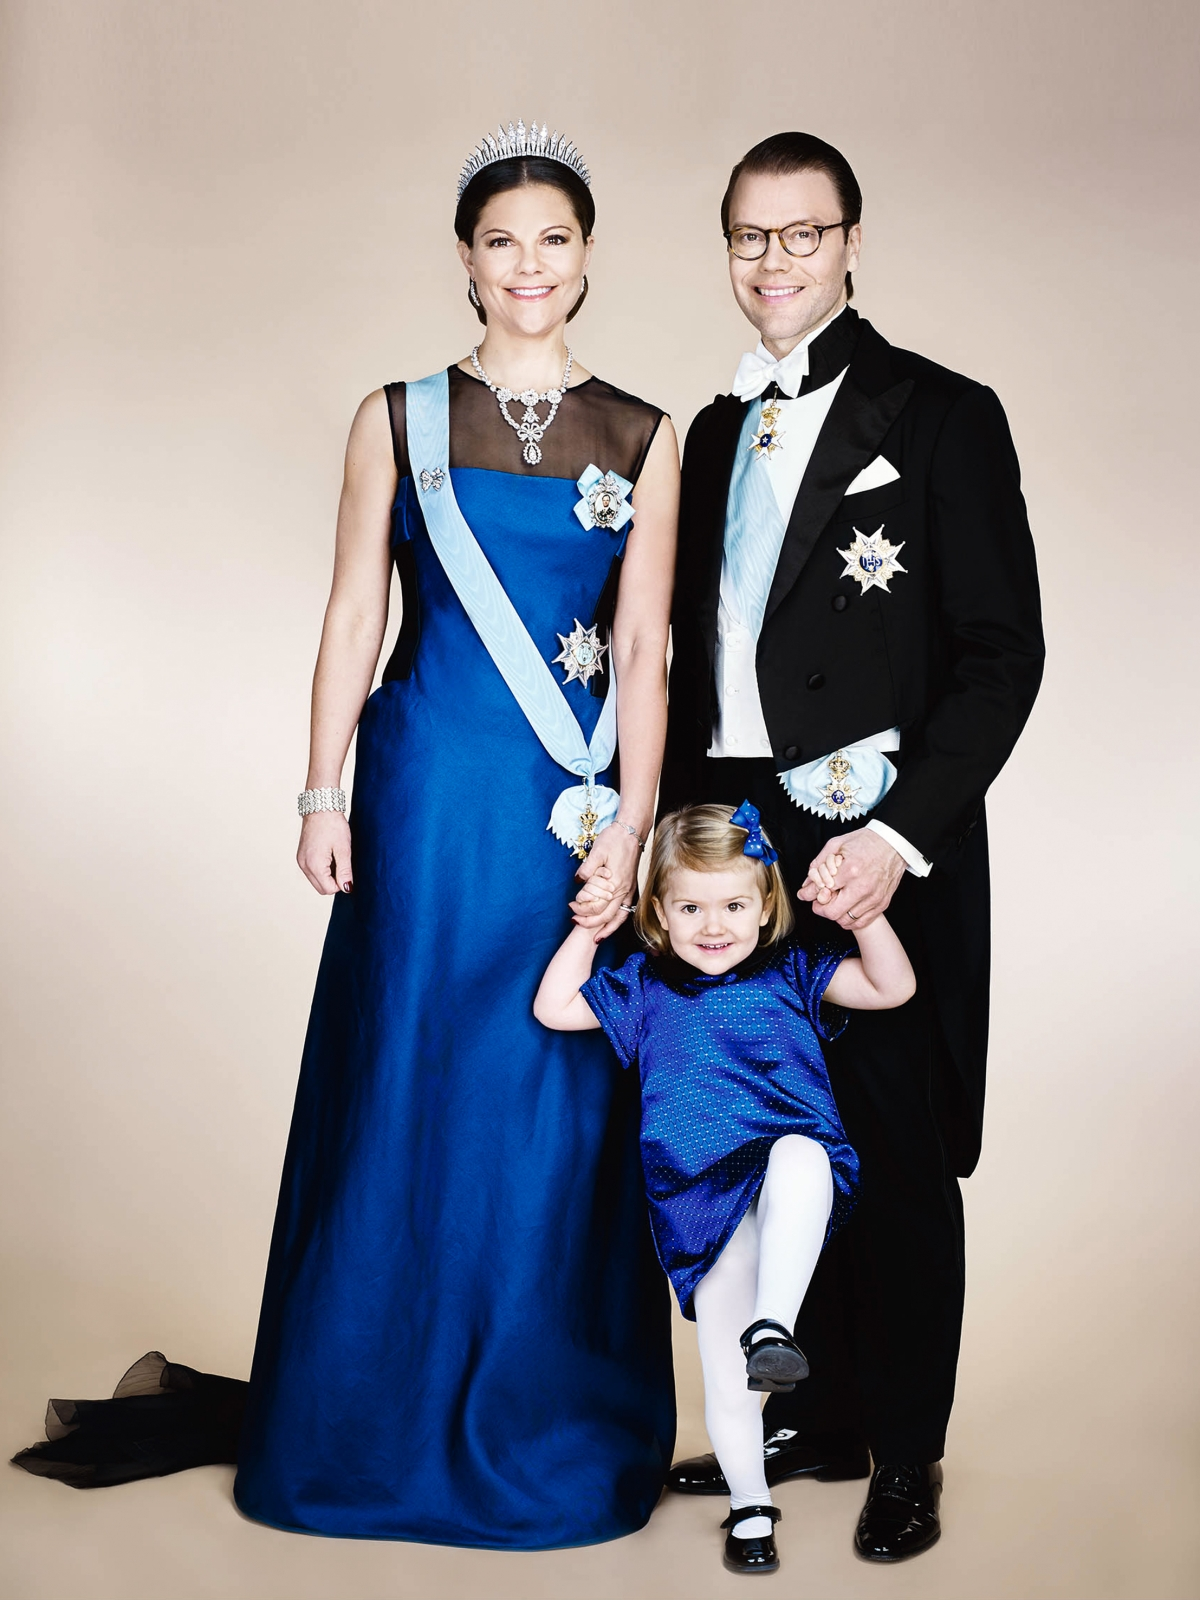 1621w Estelle S Dressy Dresses In Farmingdale Ny: Sweden's Princess Estelle Dances In New Official Royal Photo